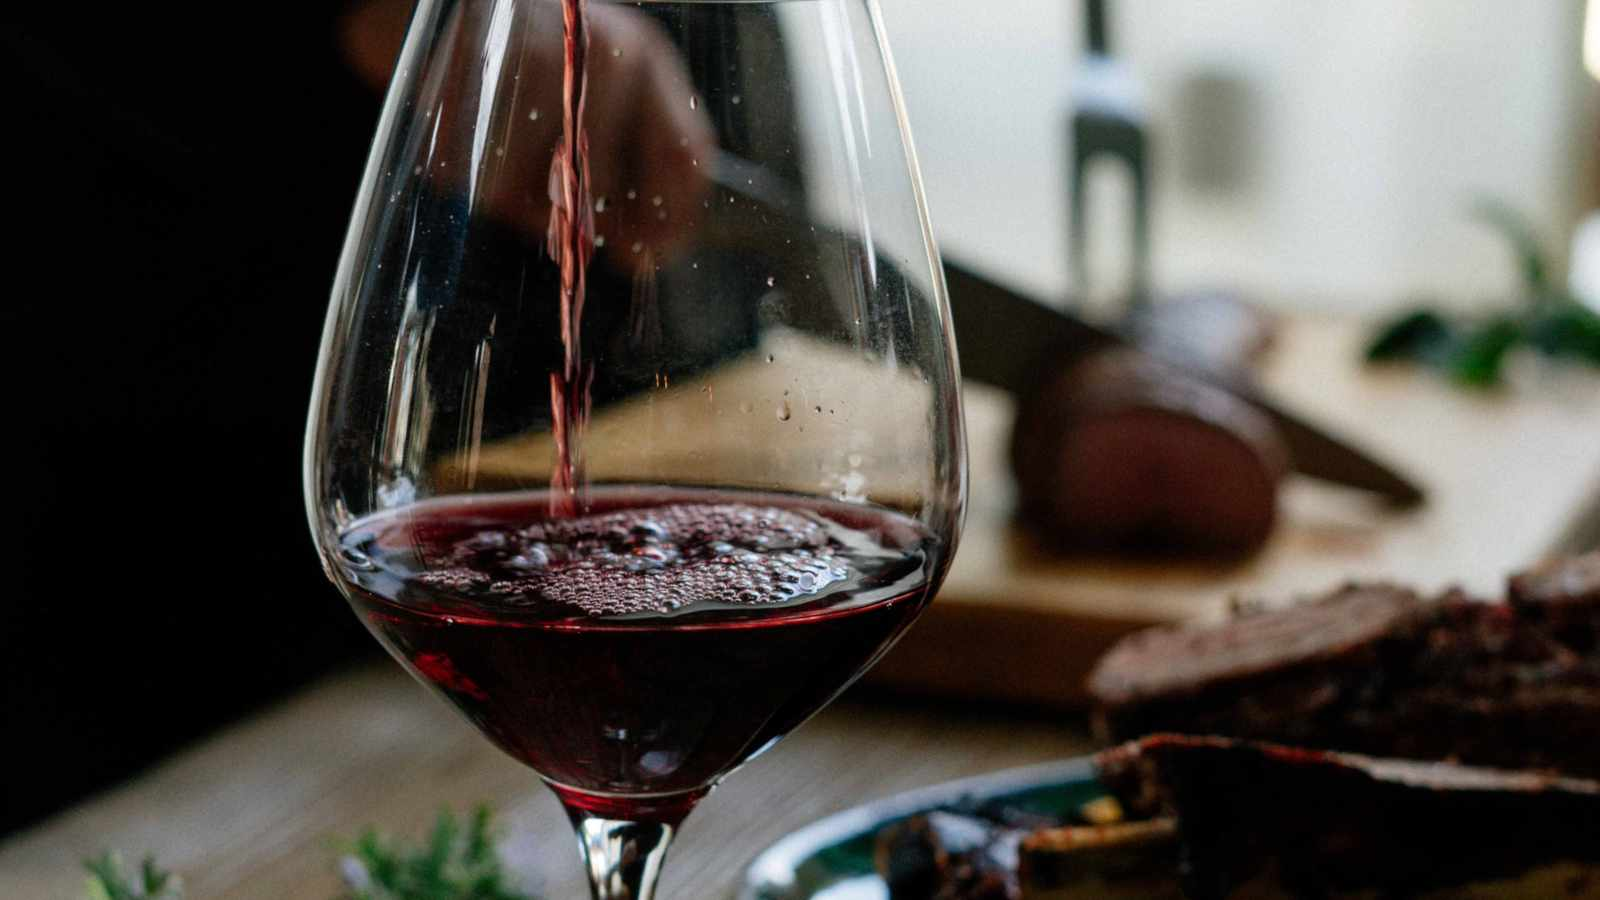 What does it mean for a wine to be 'food-friendly'? Here's what to look for